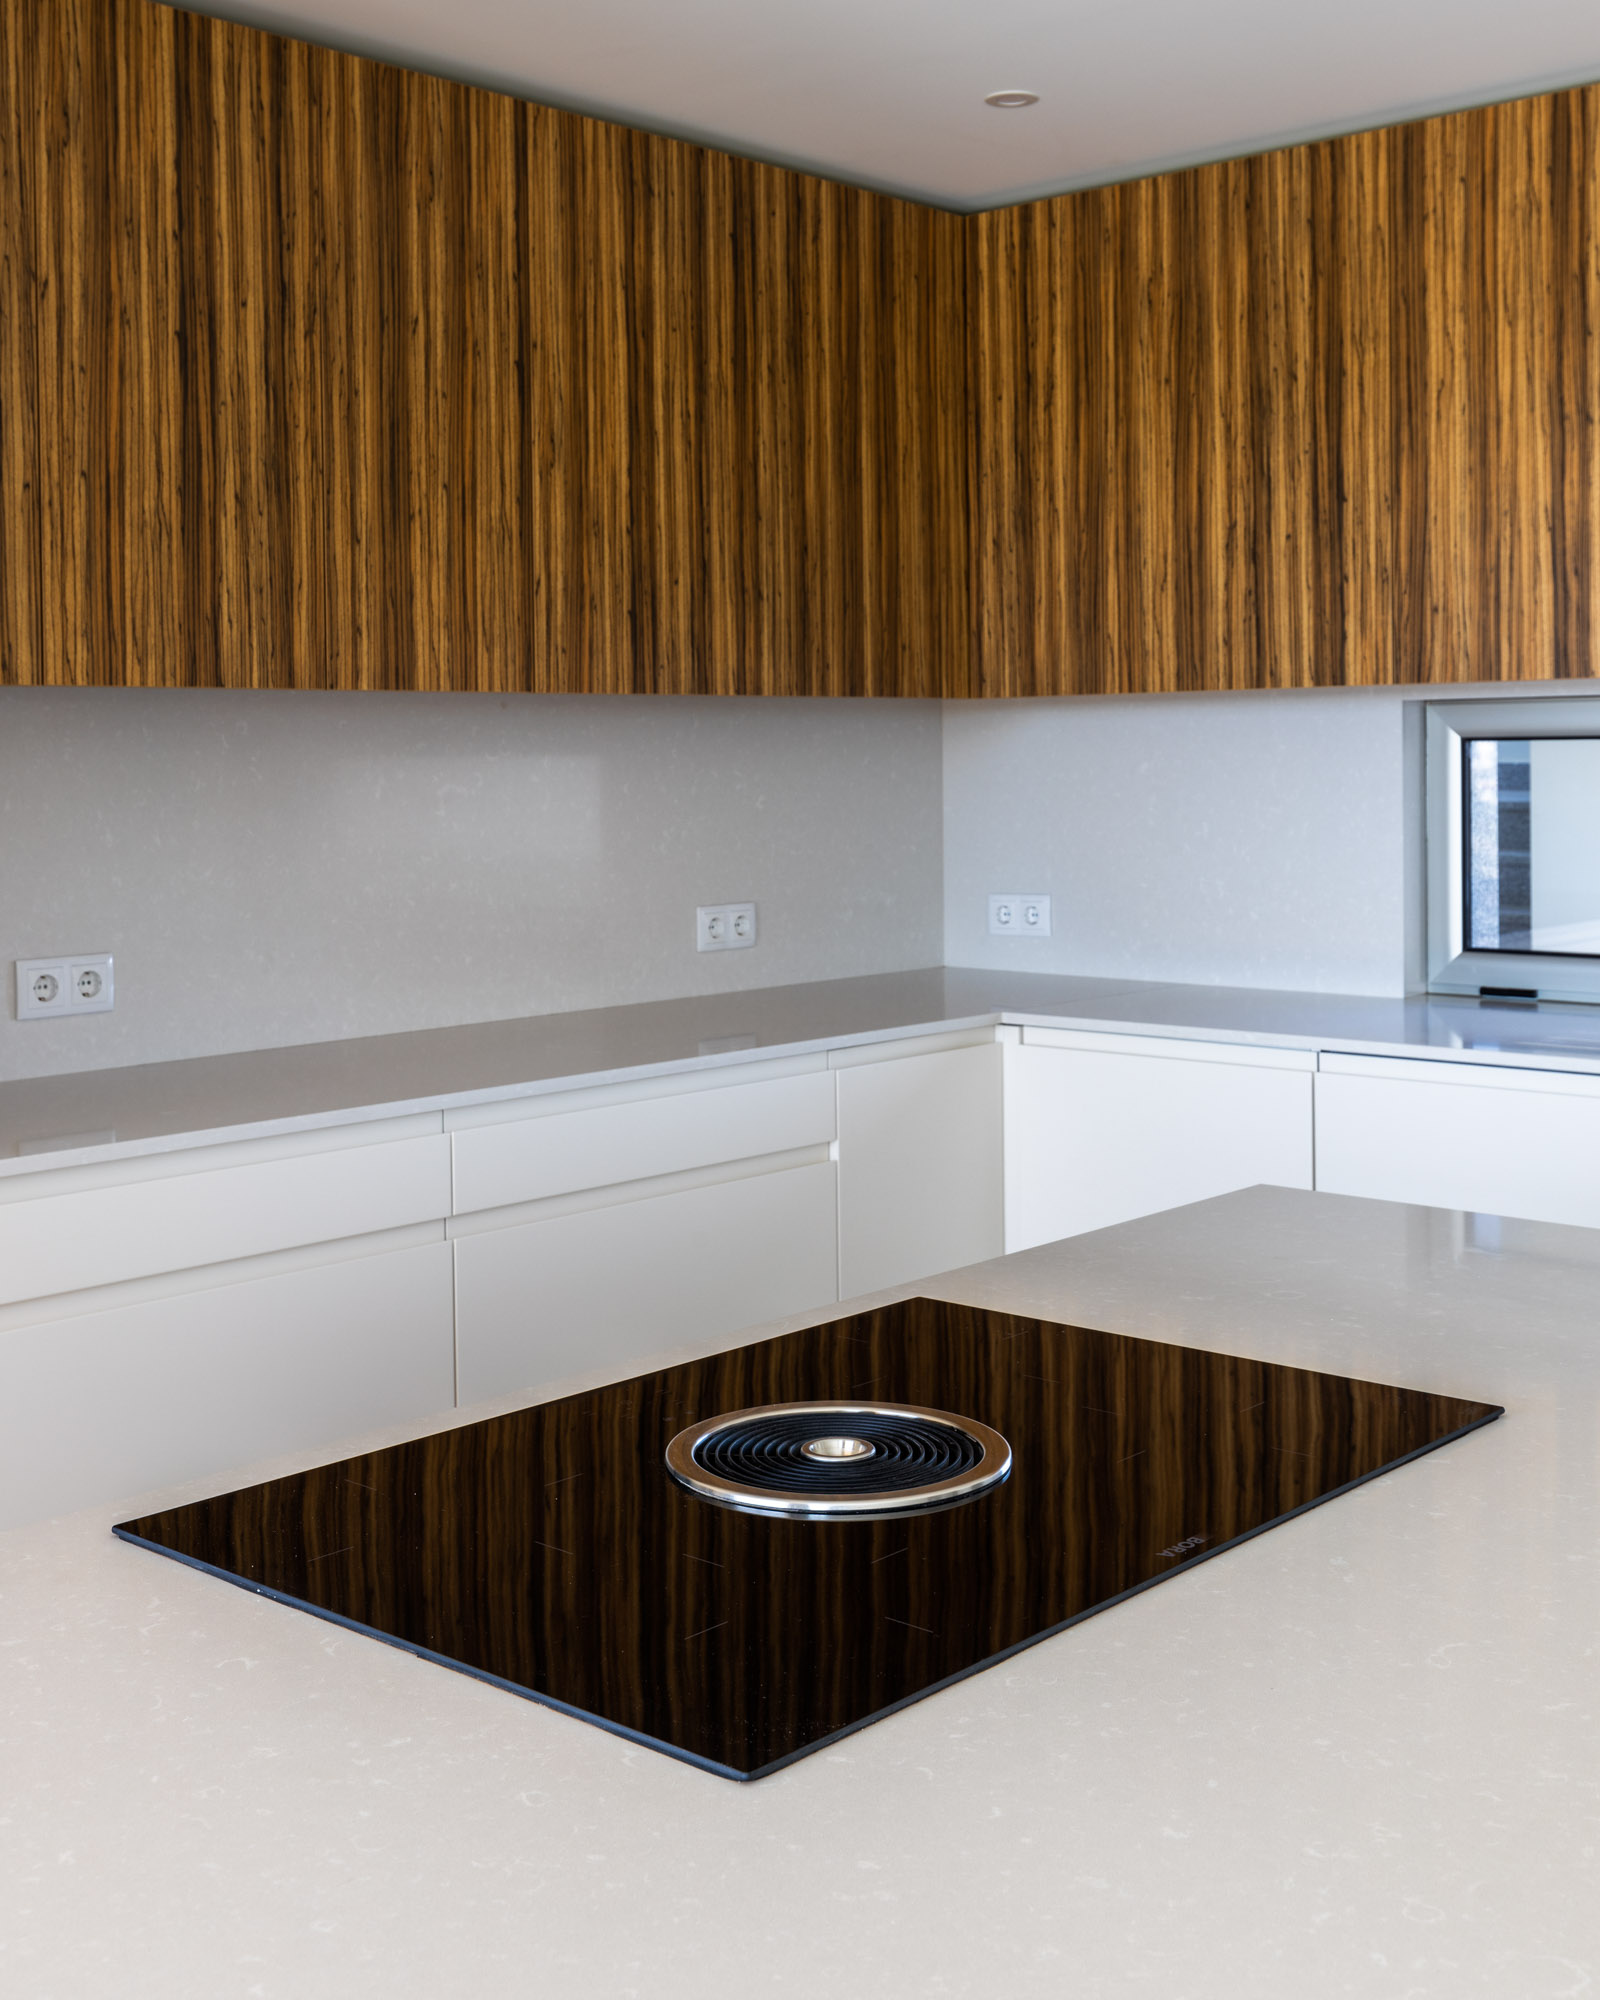 Handleless kitchen with island and white and zebrawood fronts, and BORA Basic system